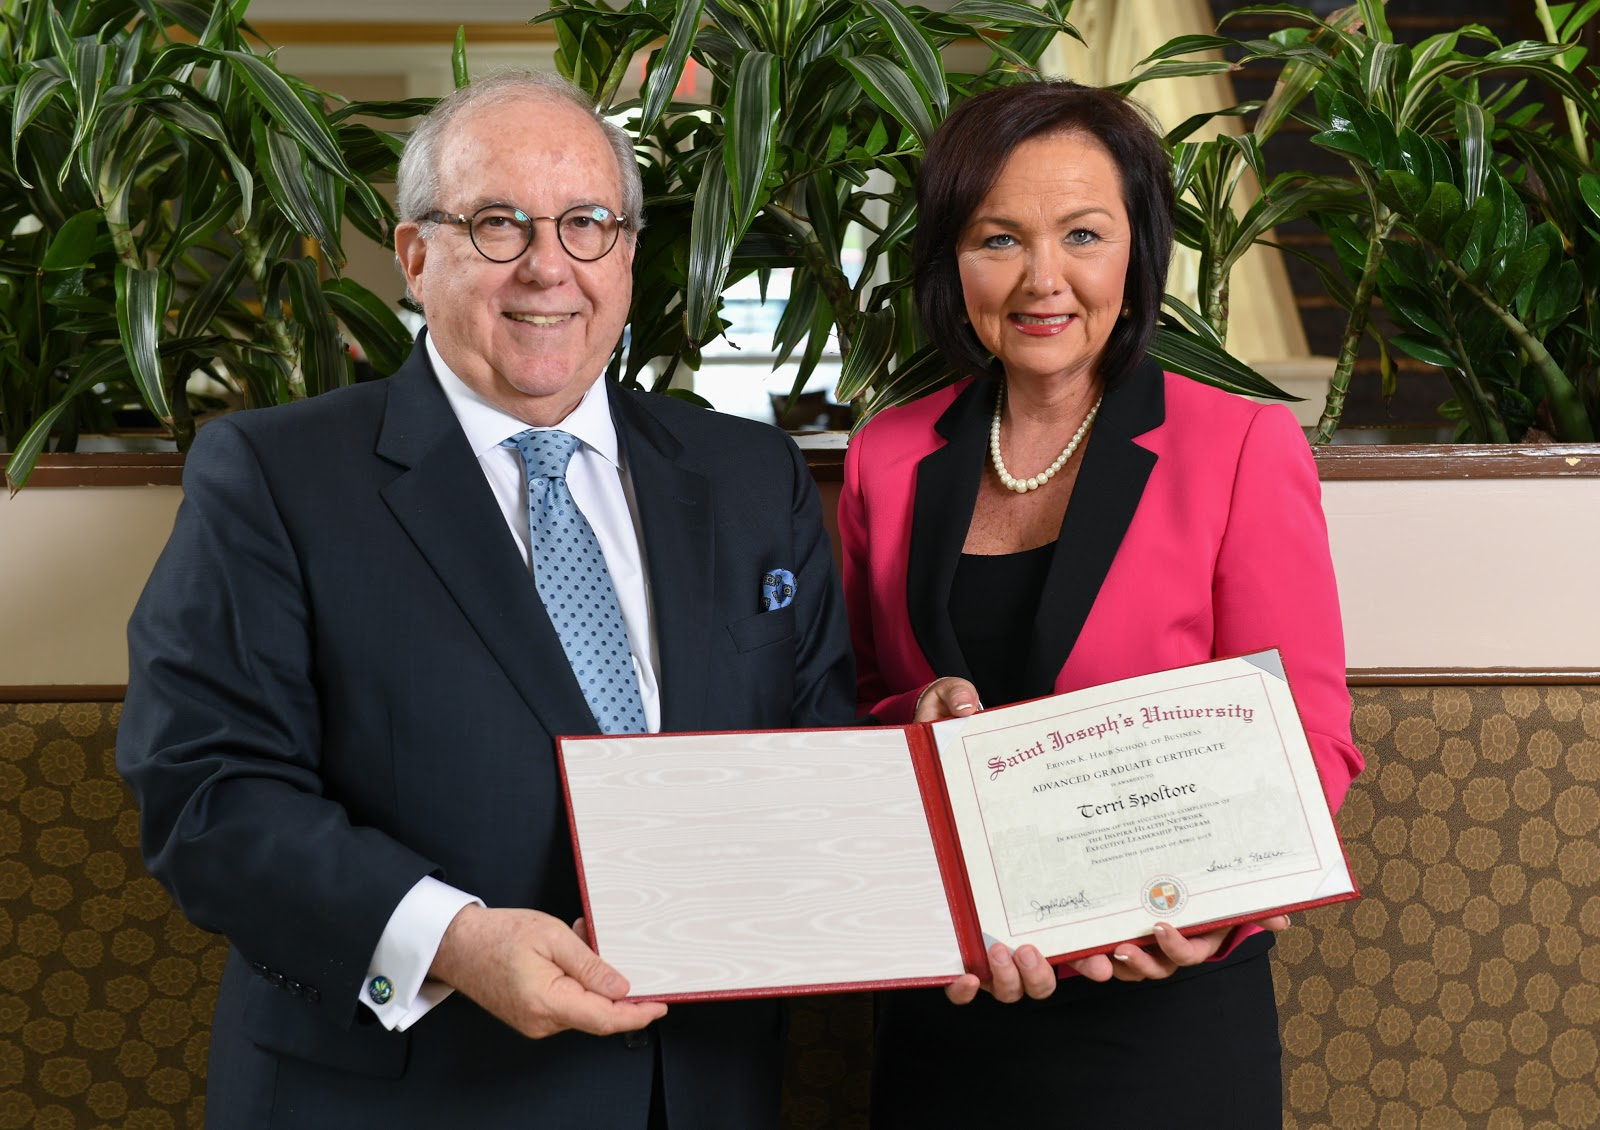 Spoltore receiving her certificate with Joseph A. DiAngelo '70, Ed.D., Dean of the Erivan K. Haub School of Business